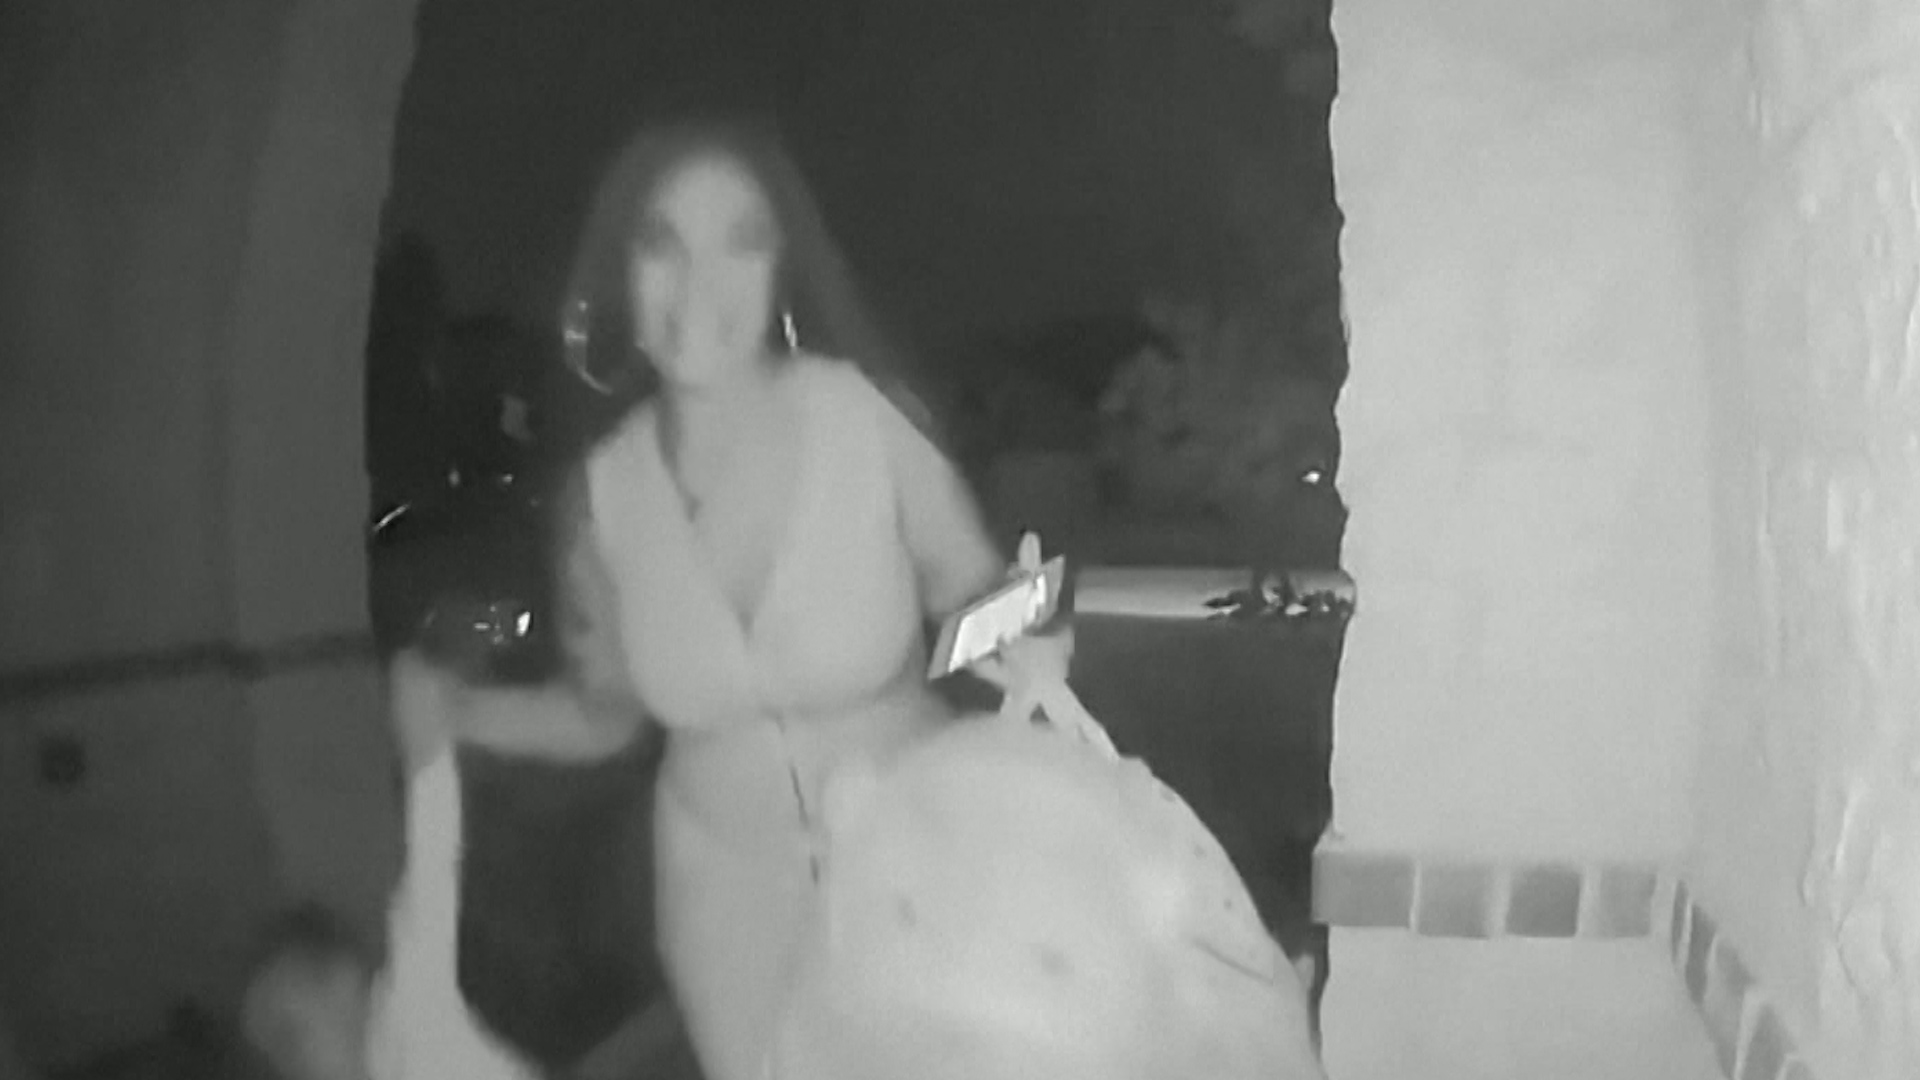 Video shows Texas woman abandoning boy on doorstep, deputies say